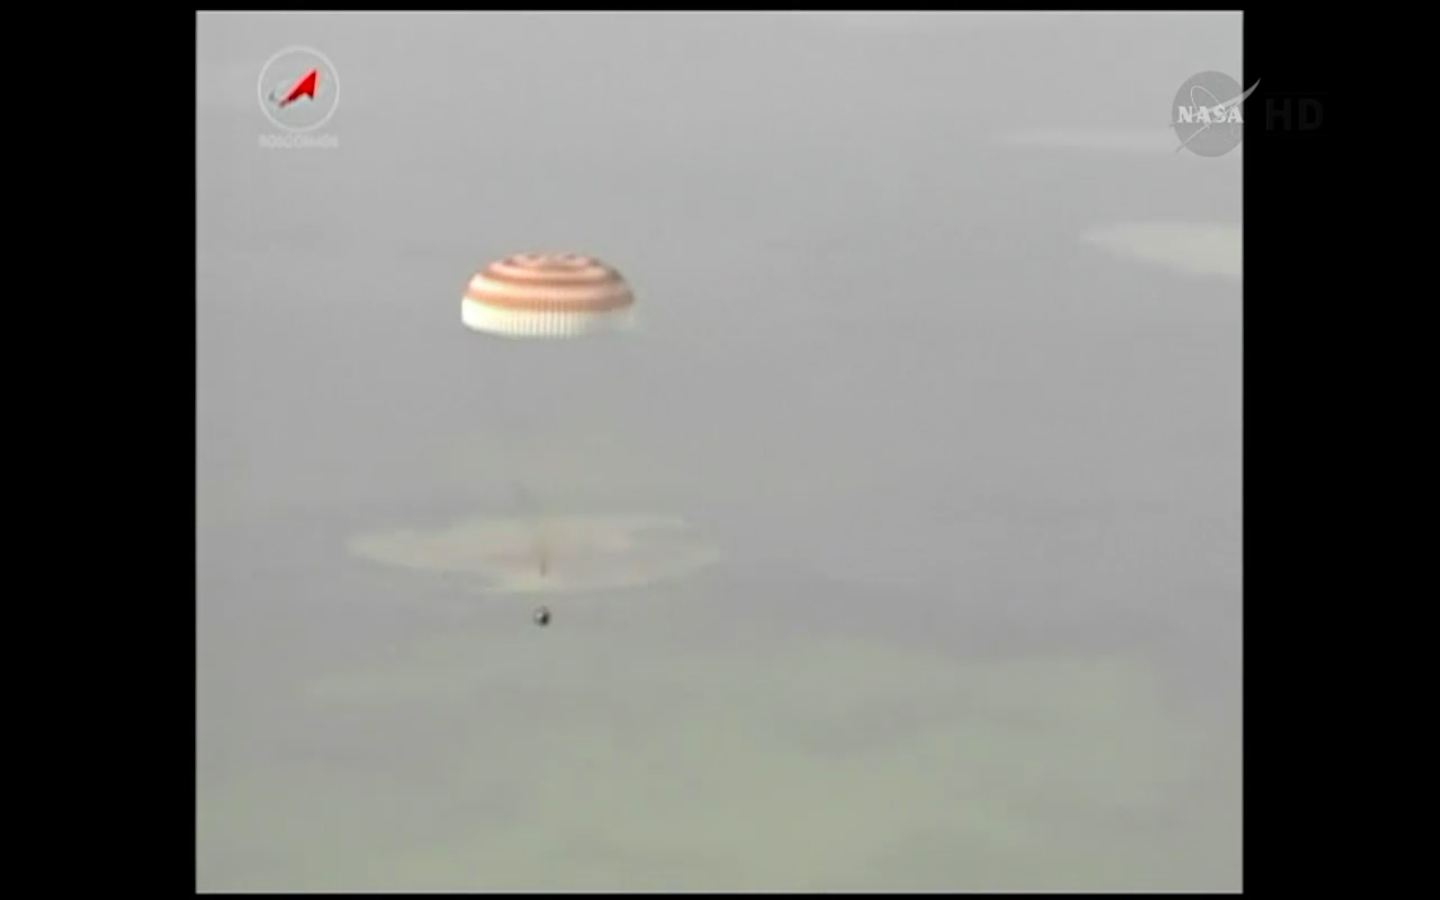 Soyuz Capsule Descends to Earth, May 13, 2014